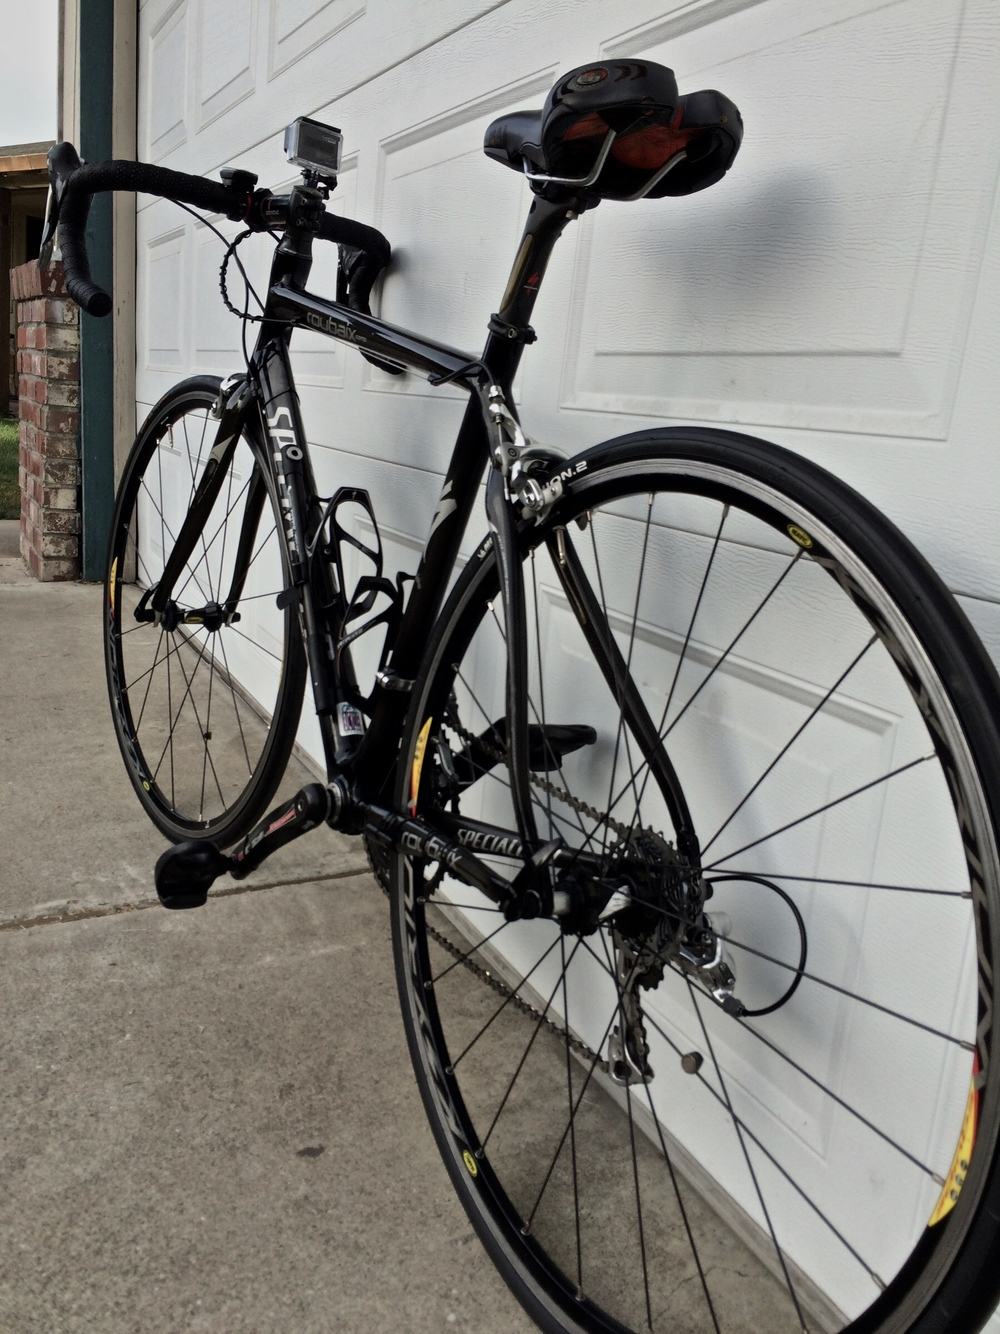 My 2004 Specialized Roubaix